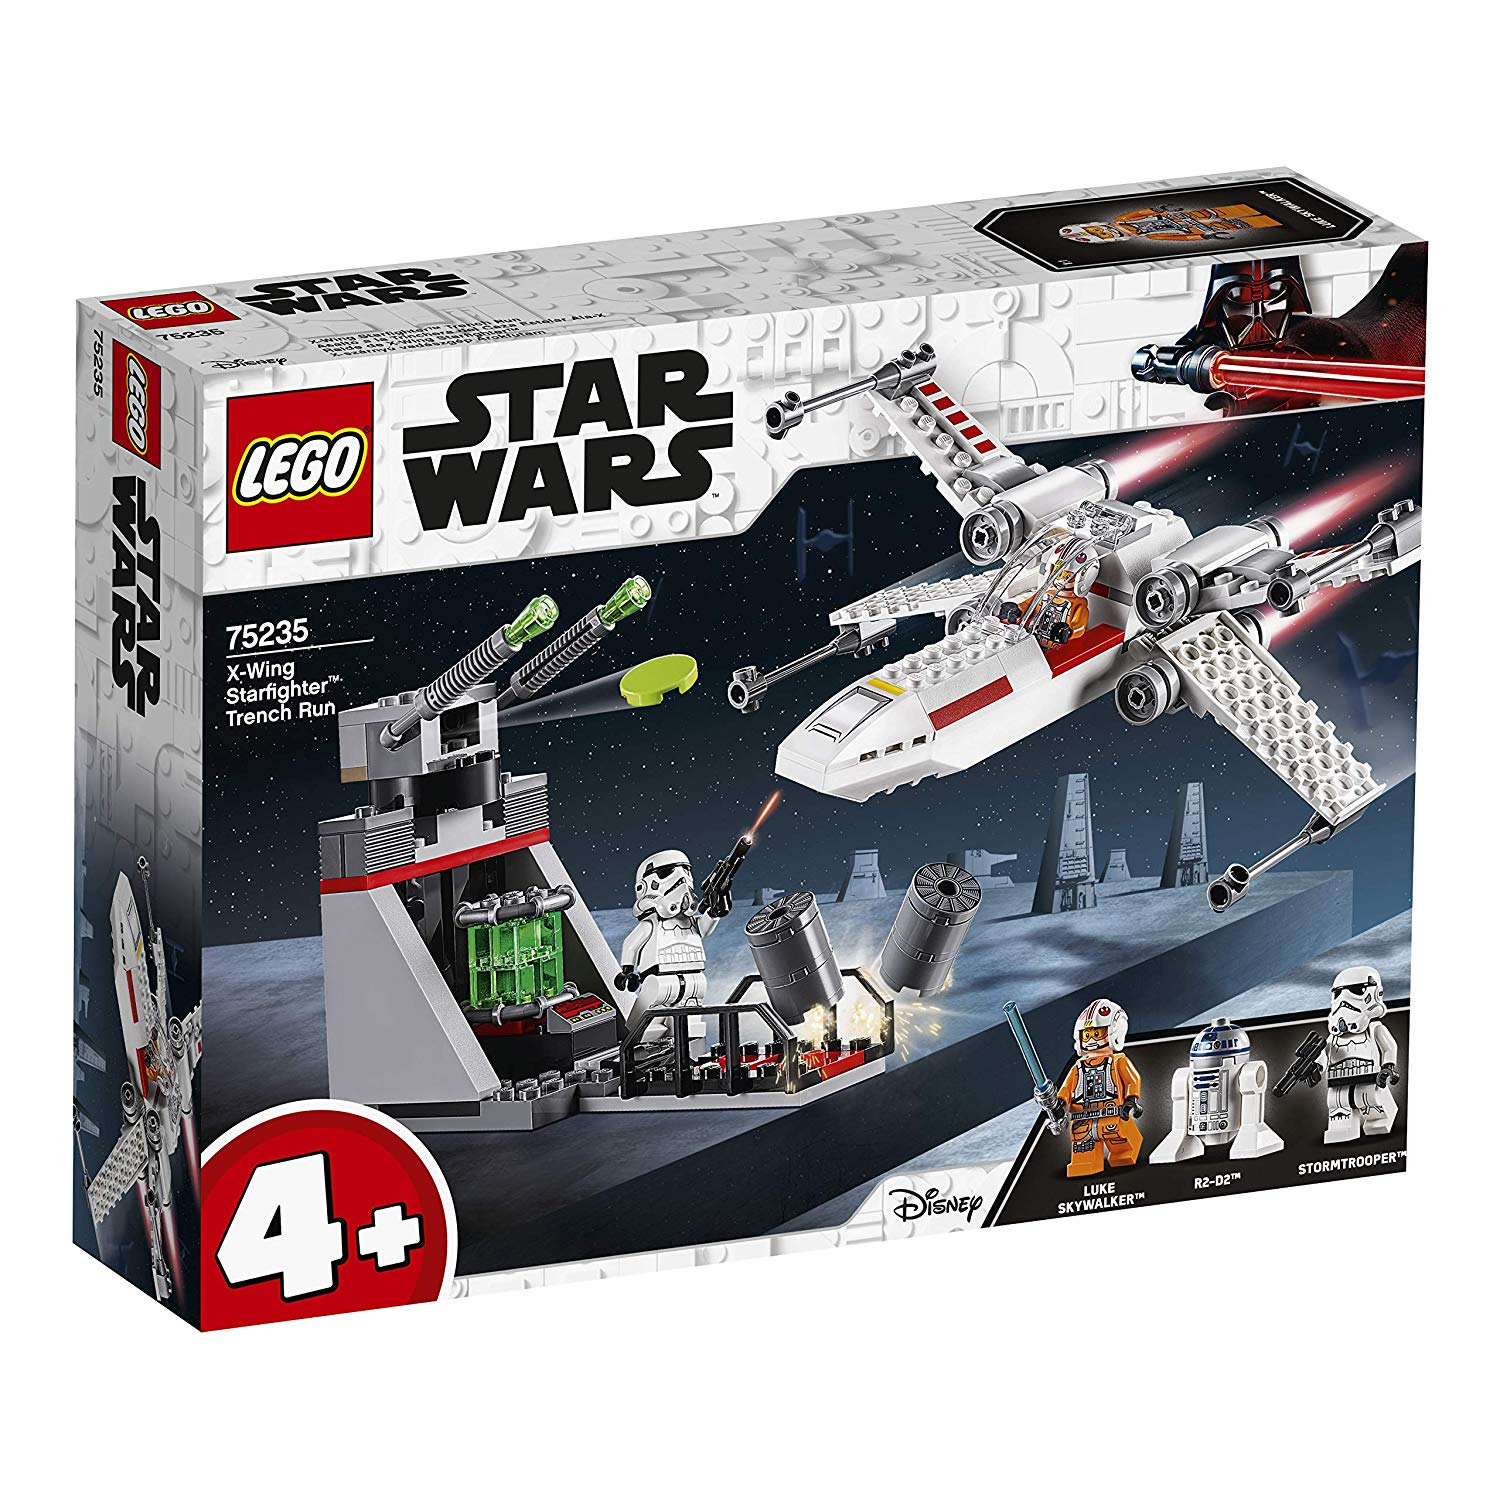 75235 X-Wing Starfighter™ Trench Run Lego Star Wars